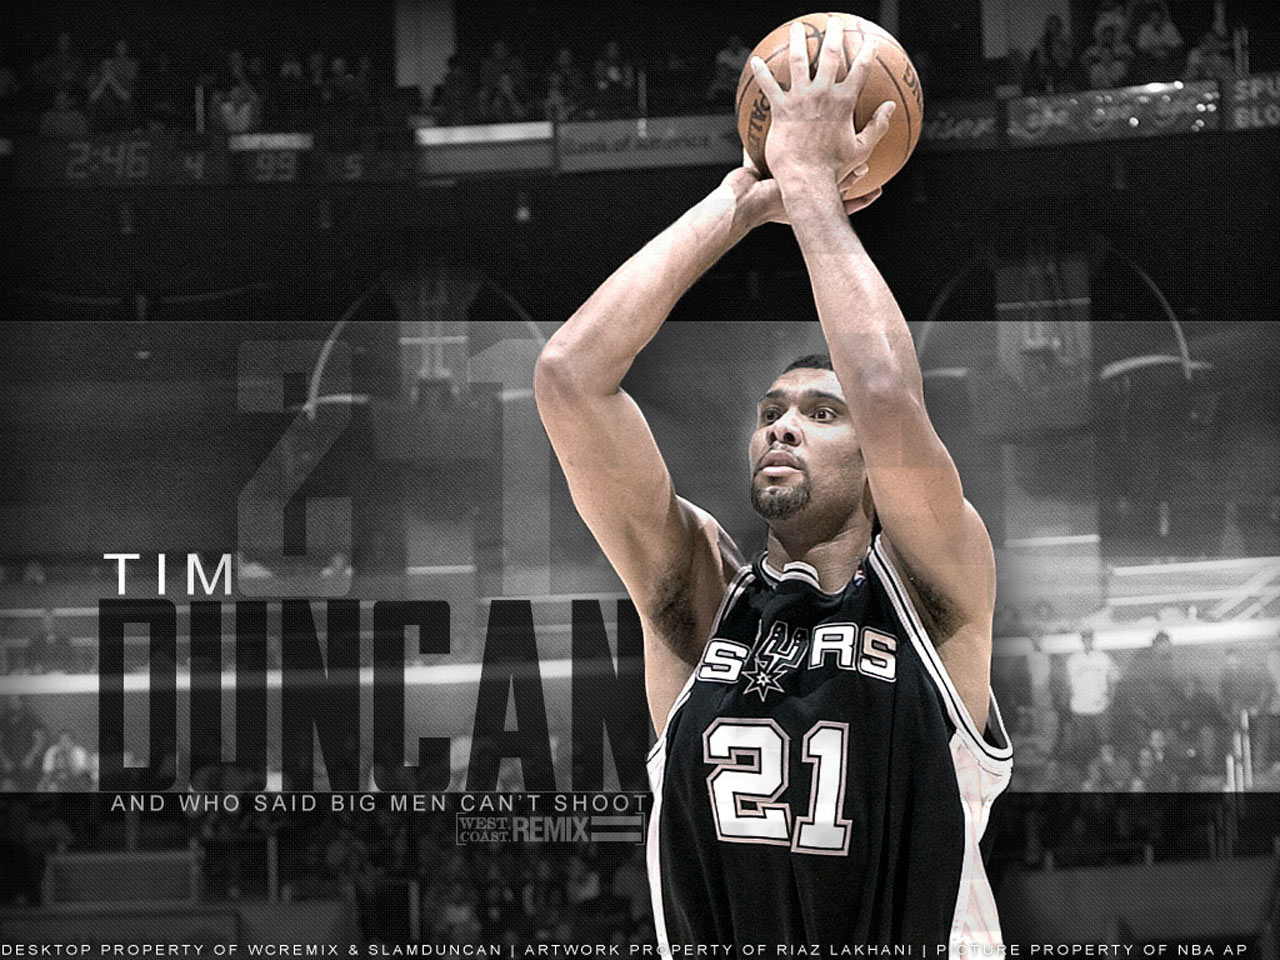 Tim Duncan Shooting